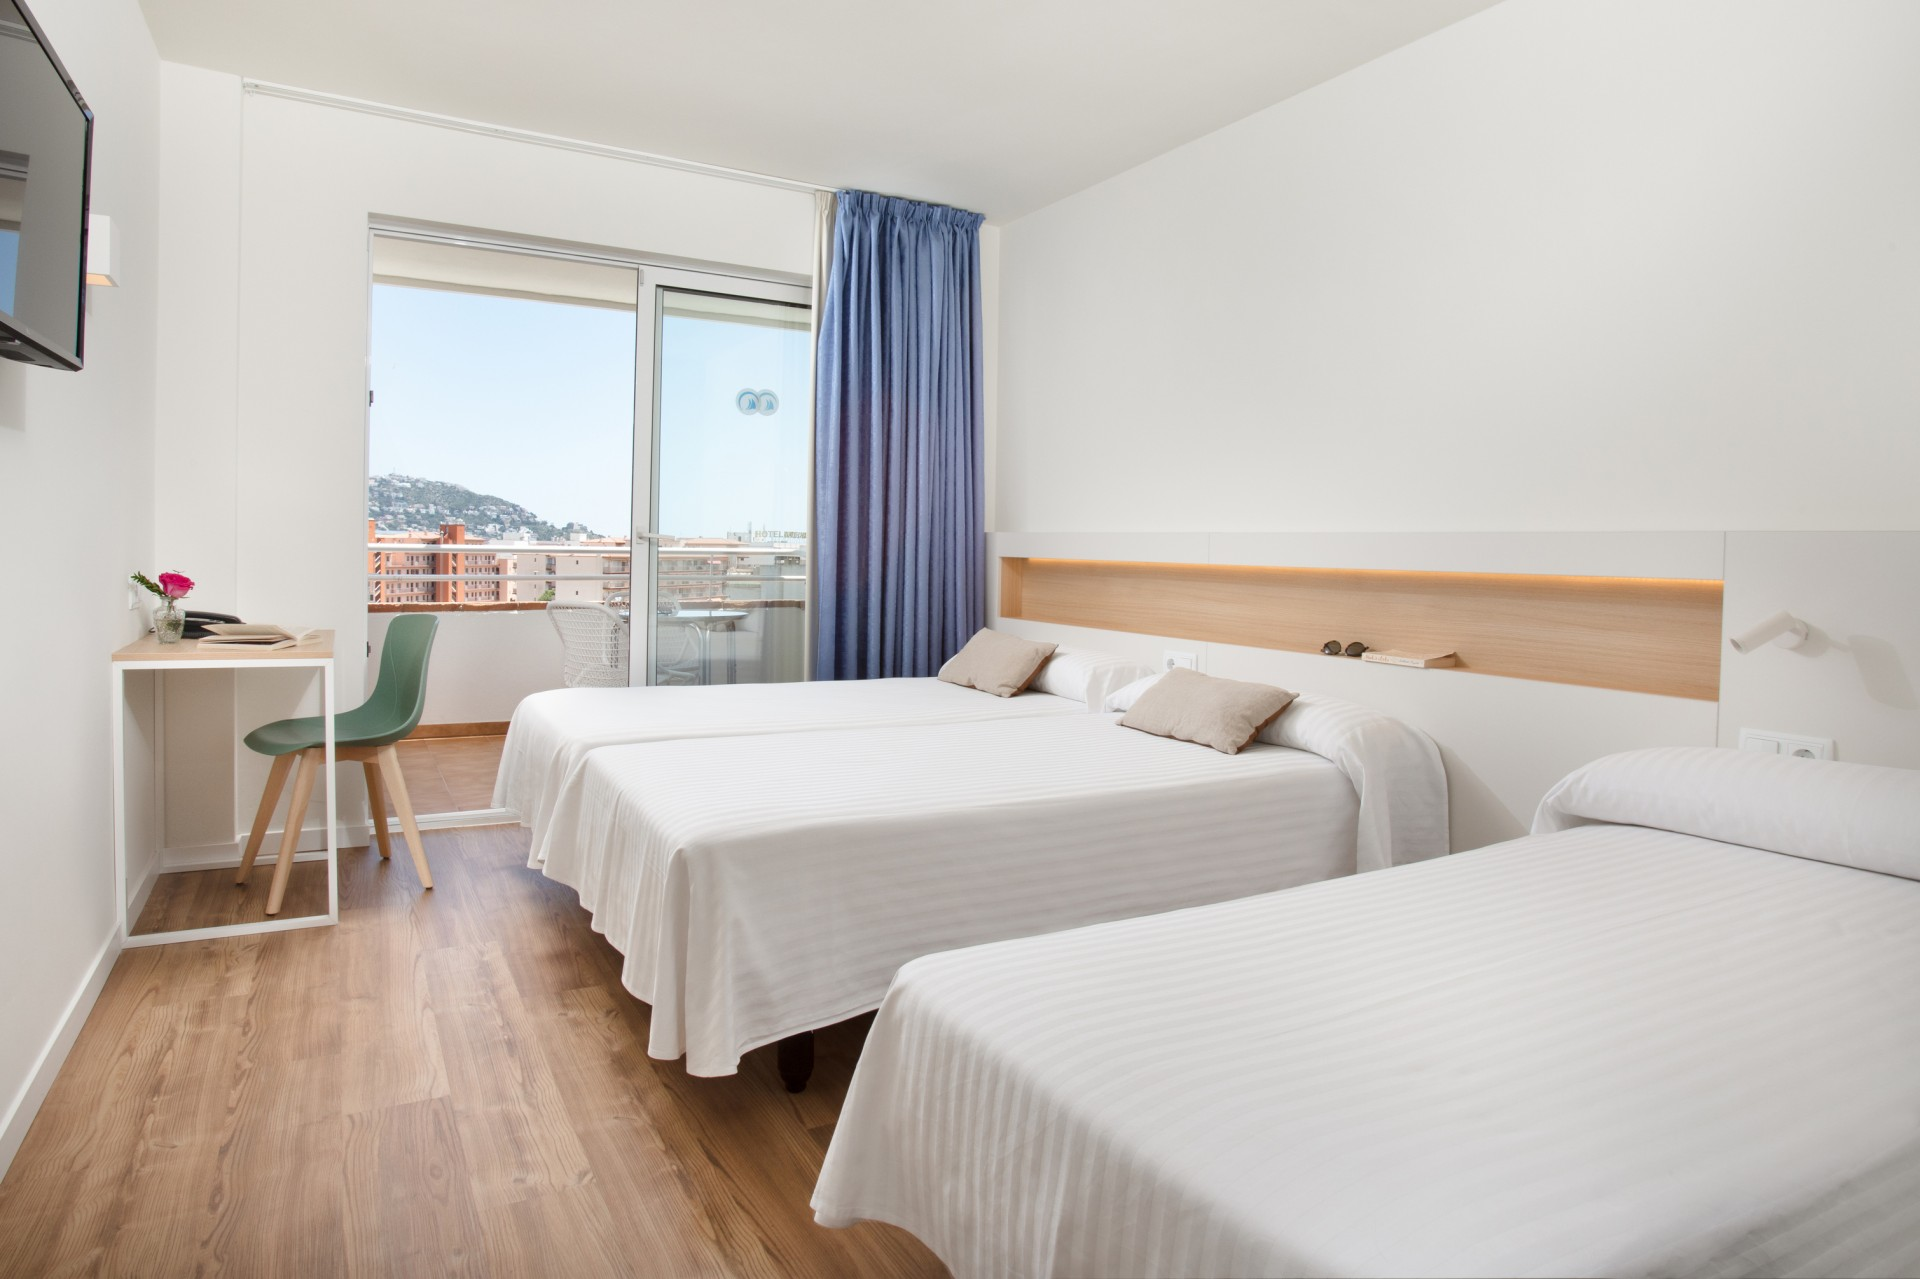 Rooms at Prestige Hotel Sant Marc